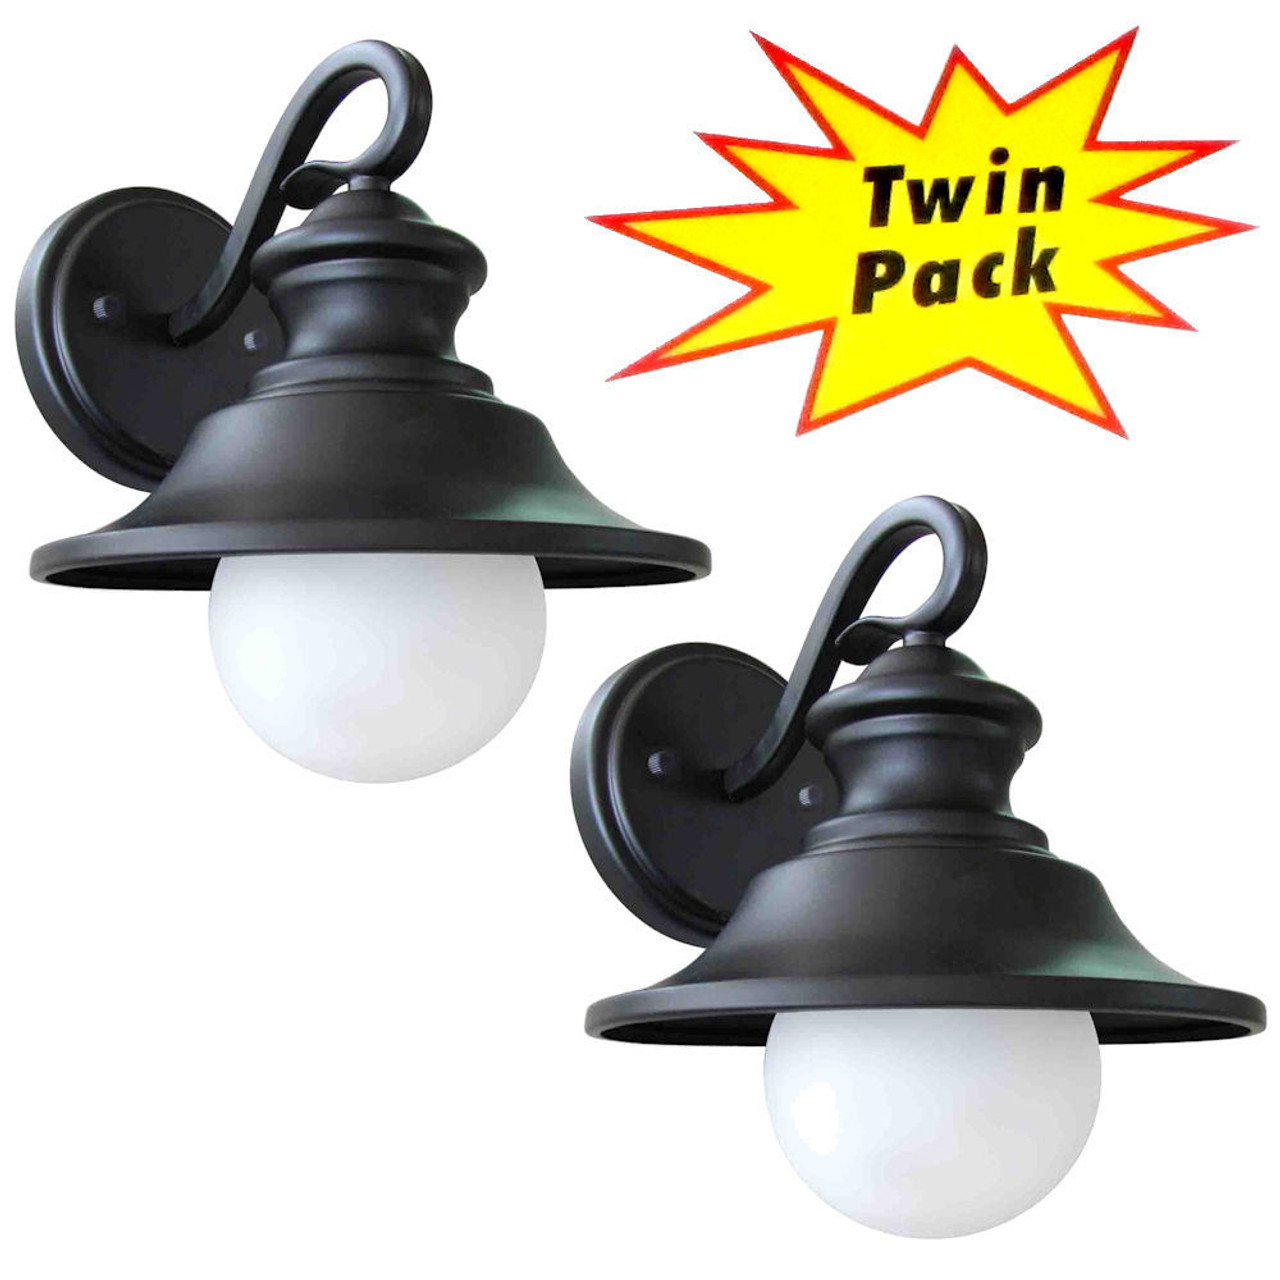 Black outdoor patio porch exterior light fixtures twin pack 21 2101